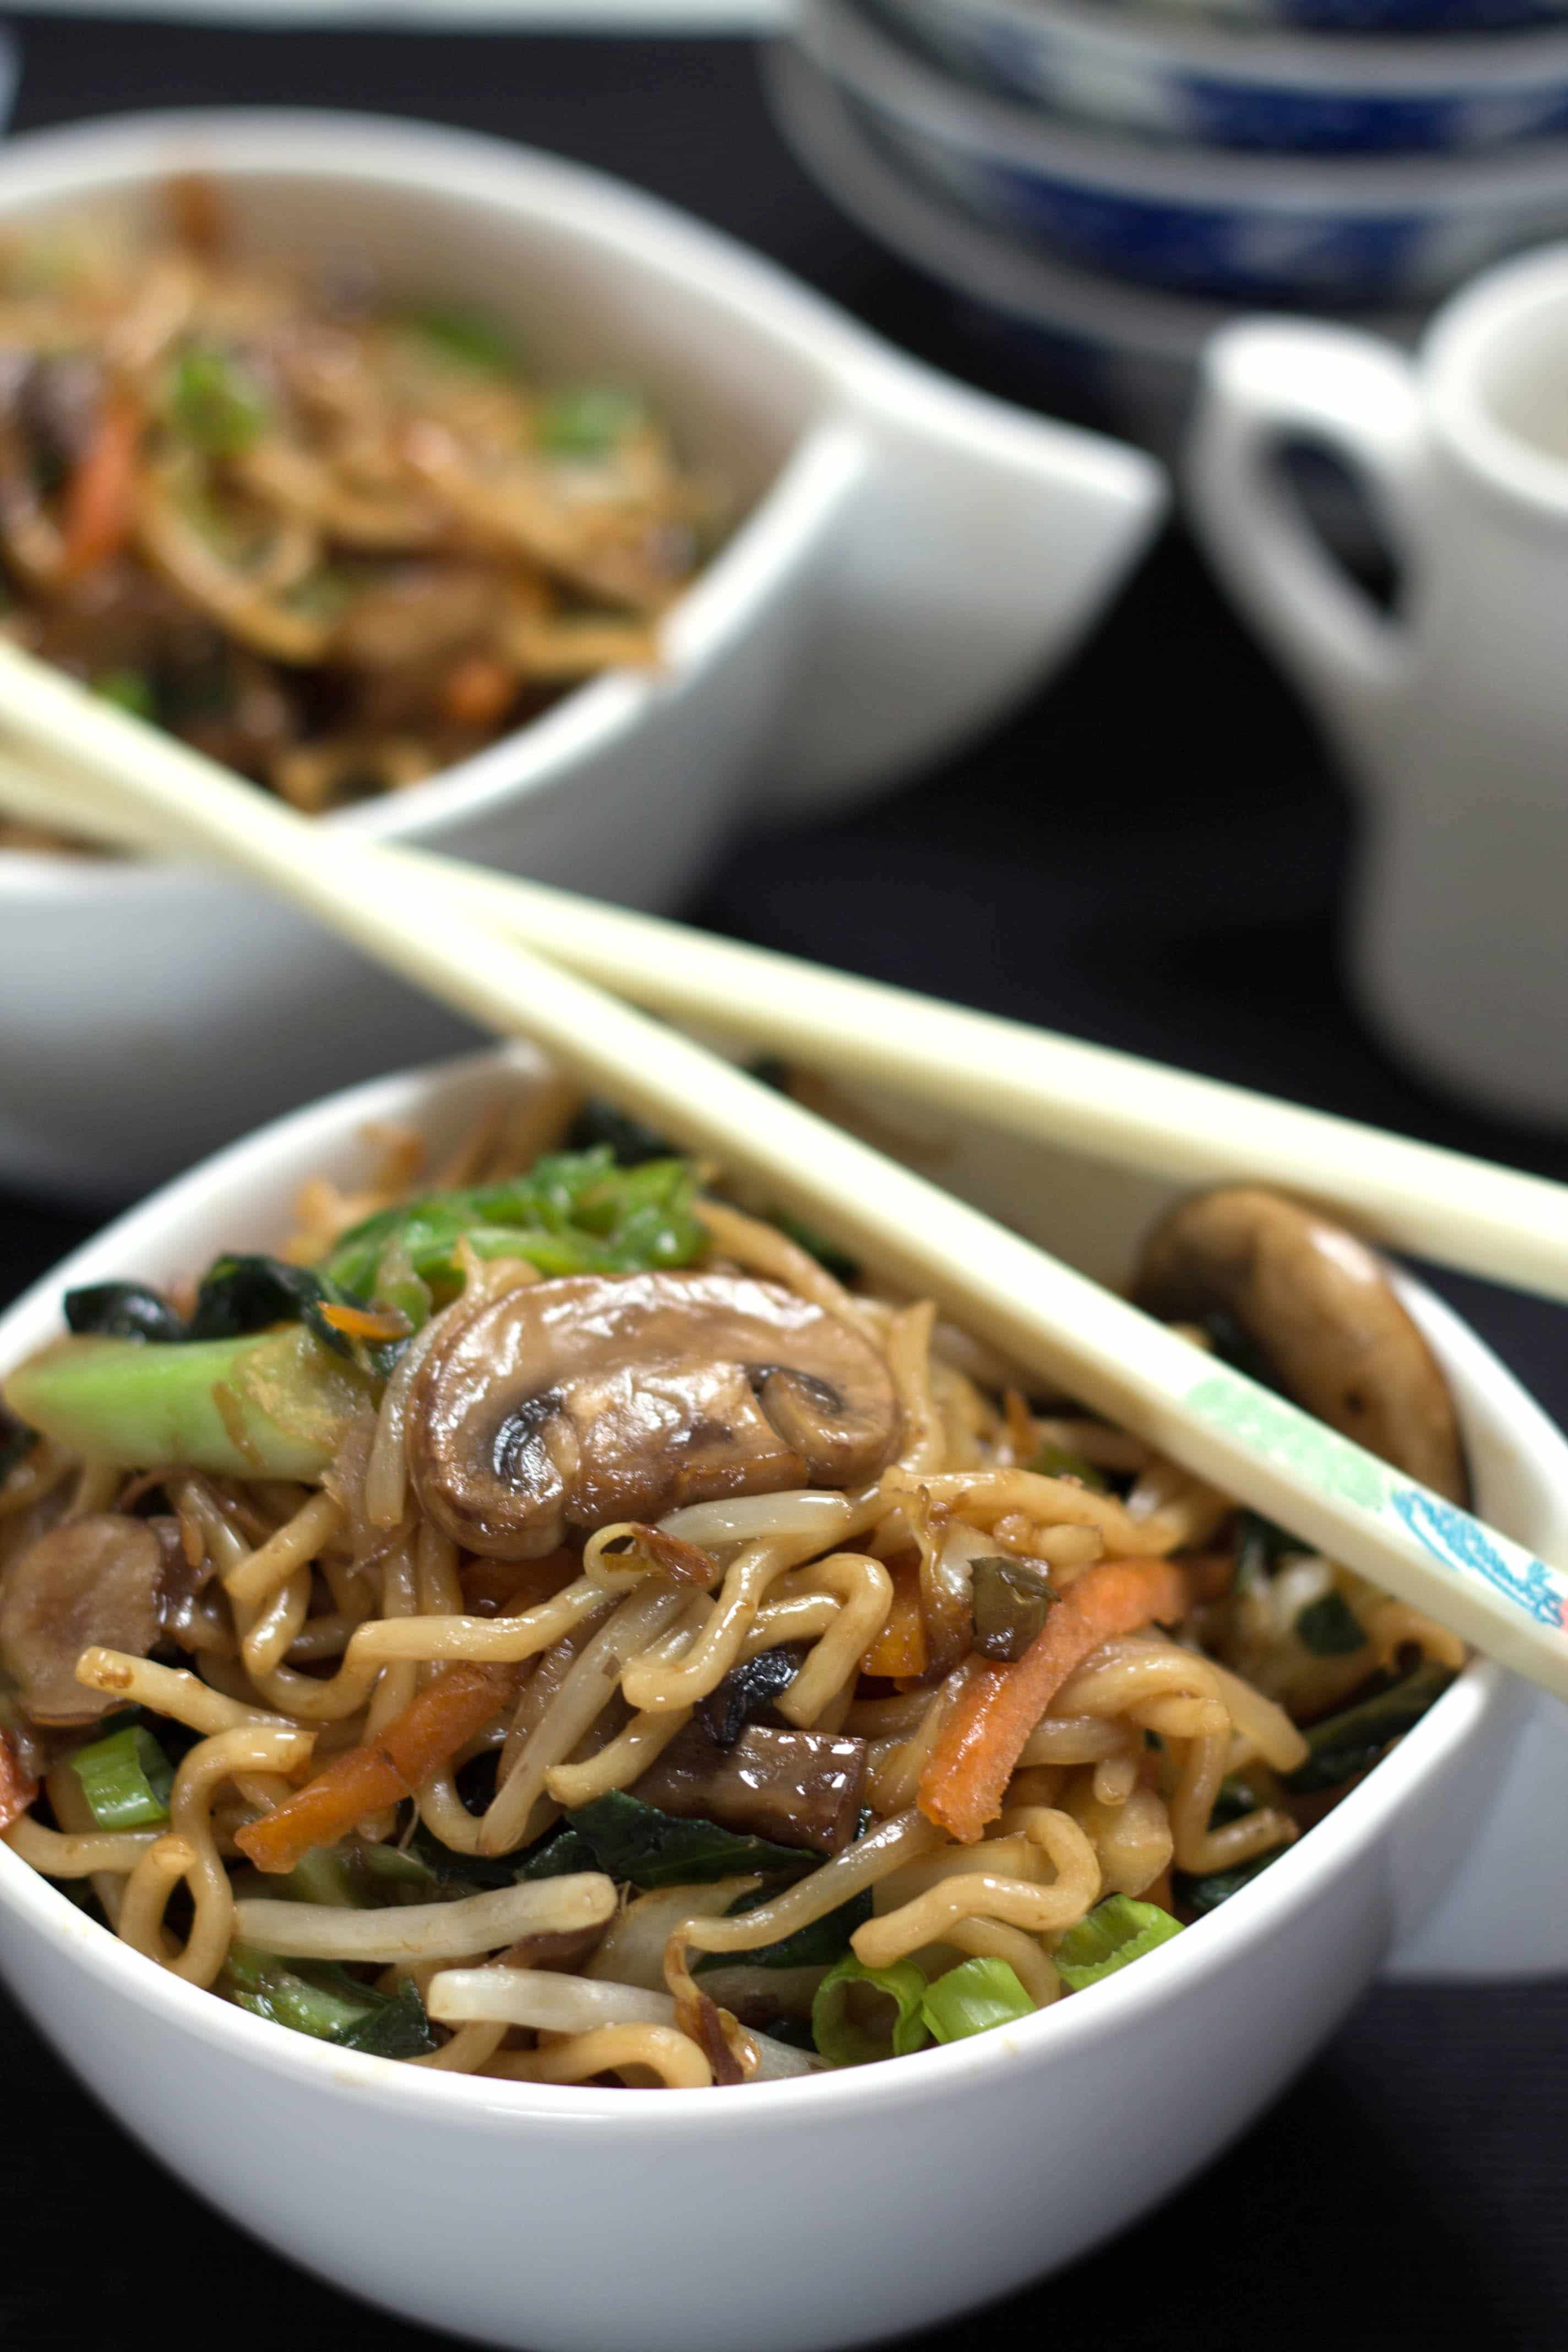 Perfect Chinese Noodles - Erren's Kitchen - Chinese restaurant taste made at home in minutes!